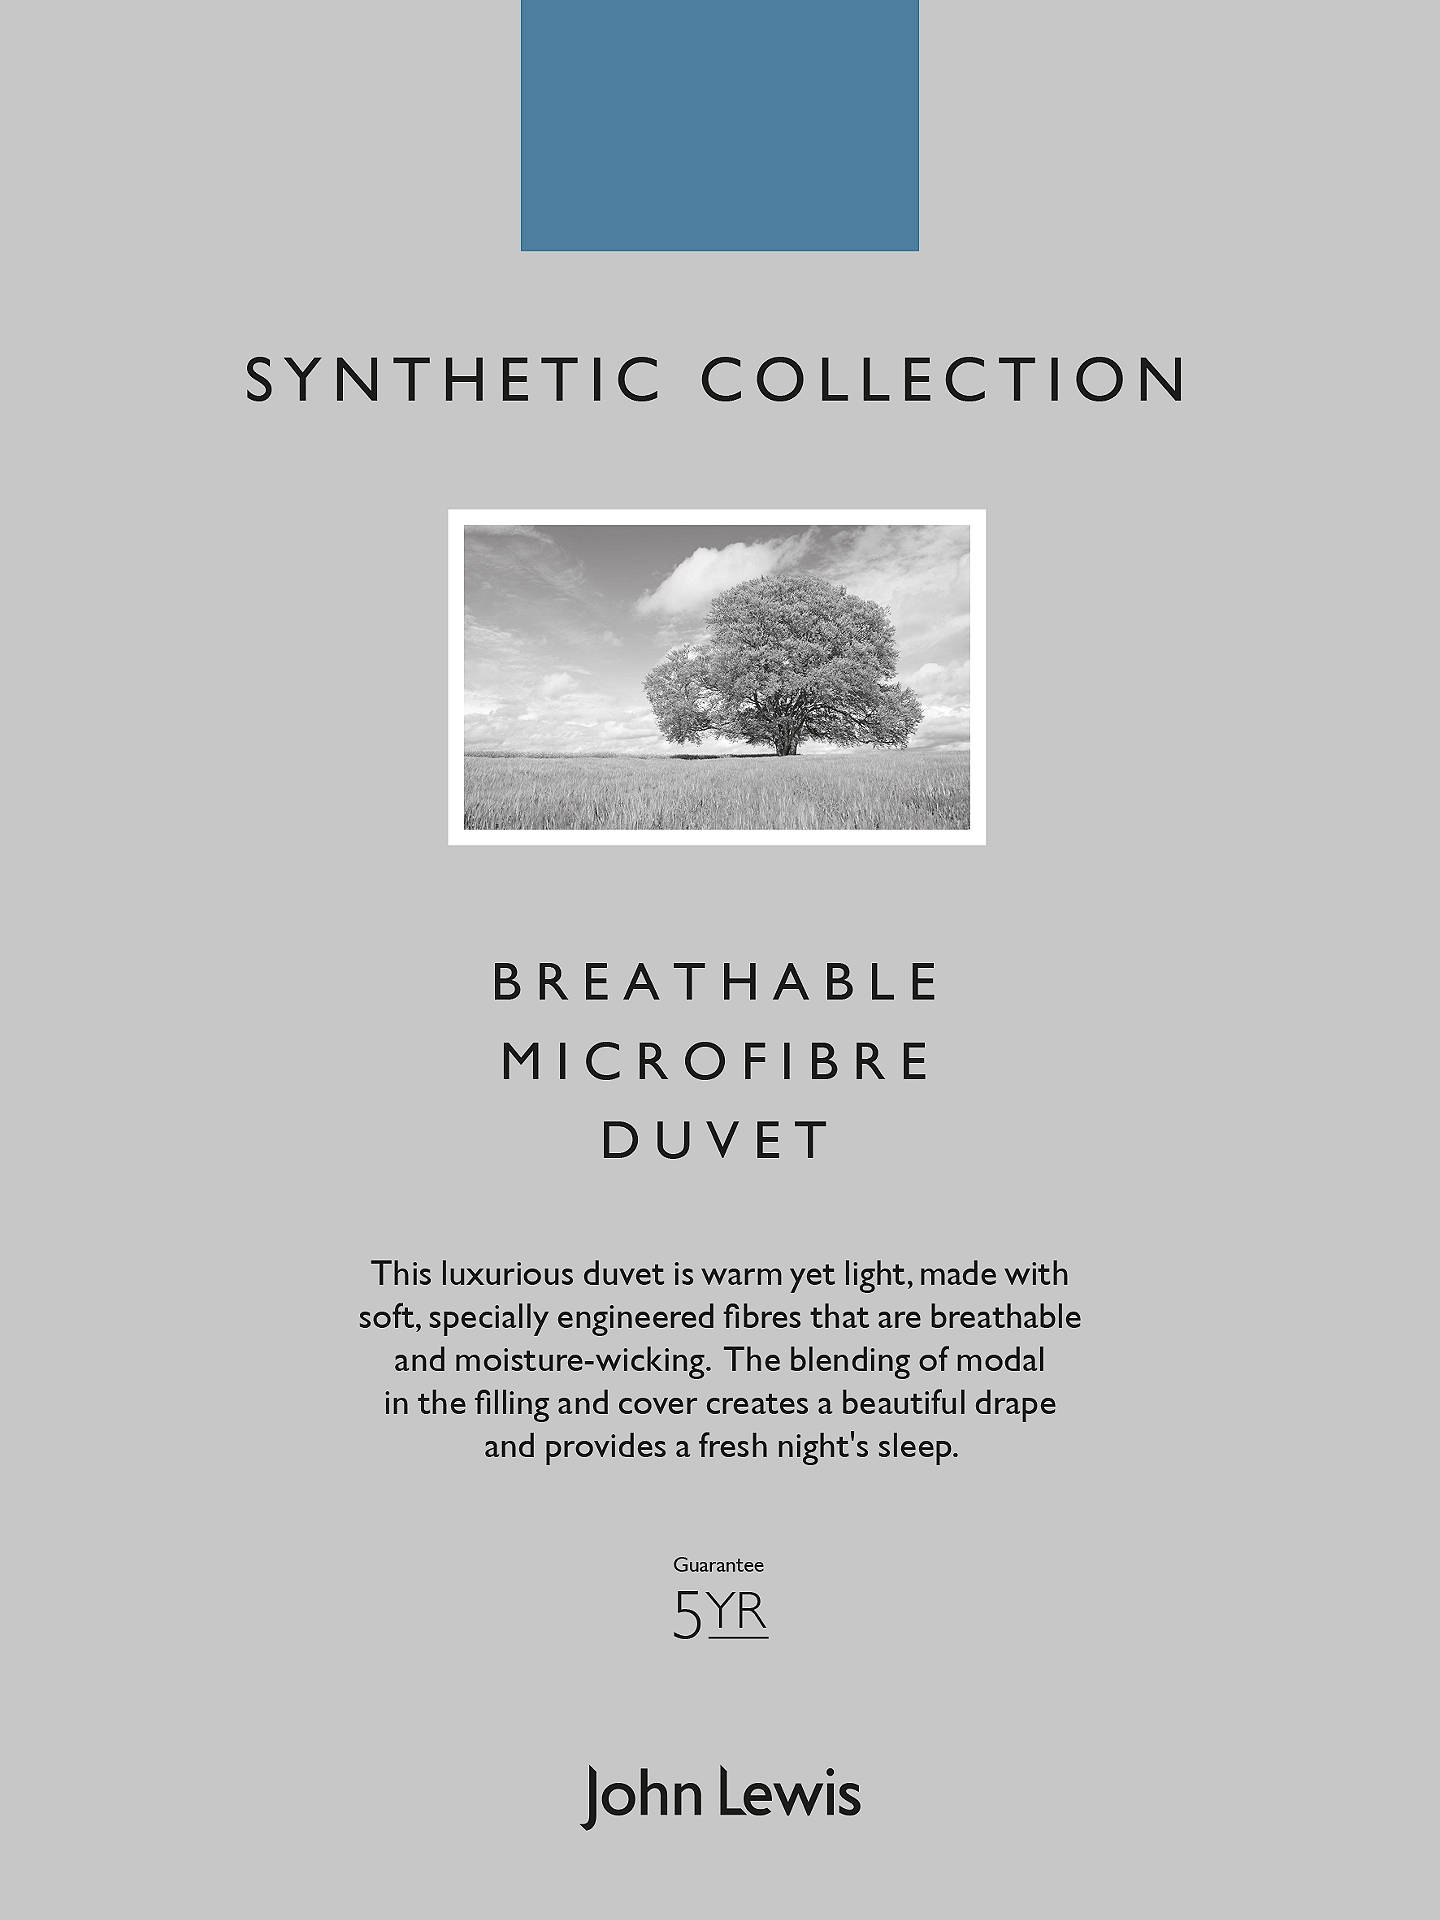 BuyJohn Lewis & Partners Synthetic Collection Breathable Microfibre Duvet, 2.5 Tog, Super King Online at johnlewis.com